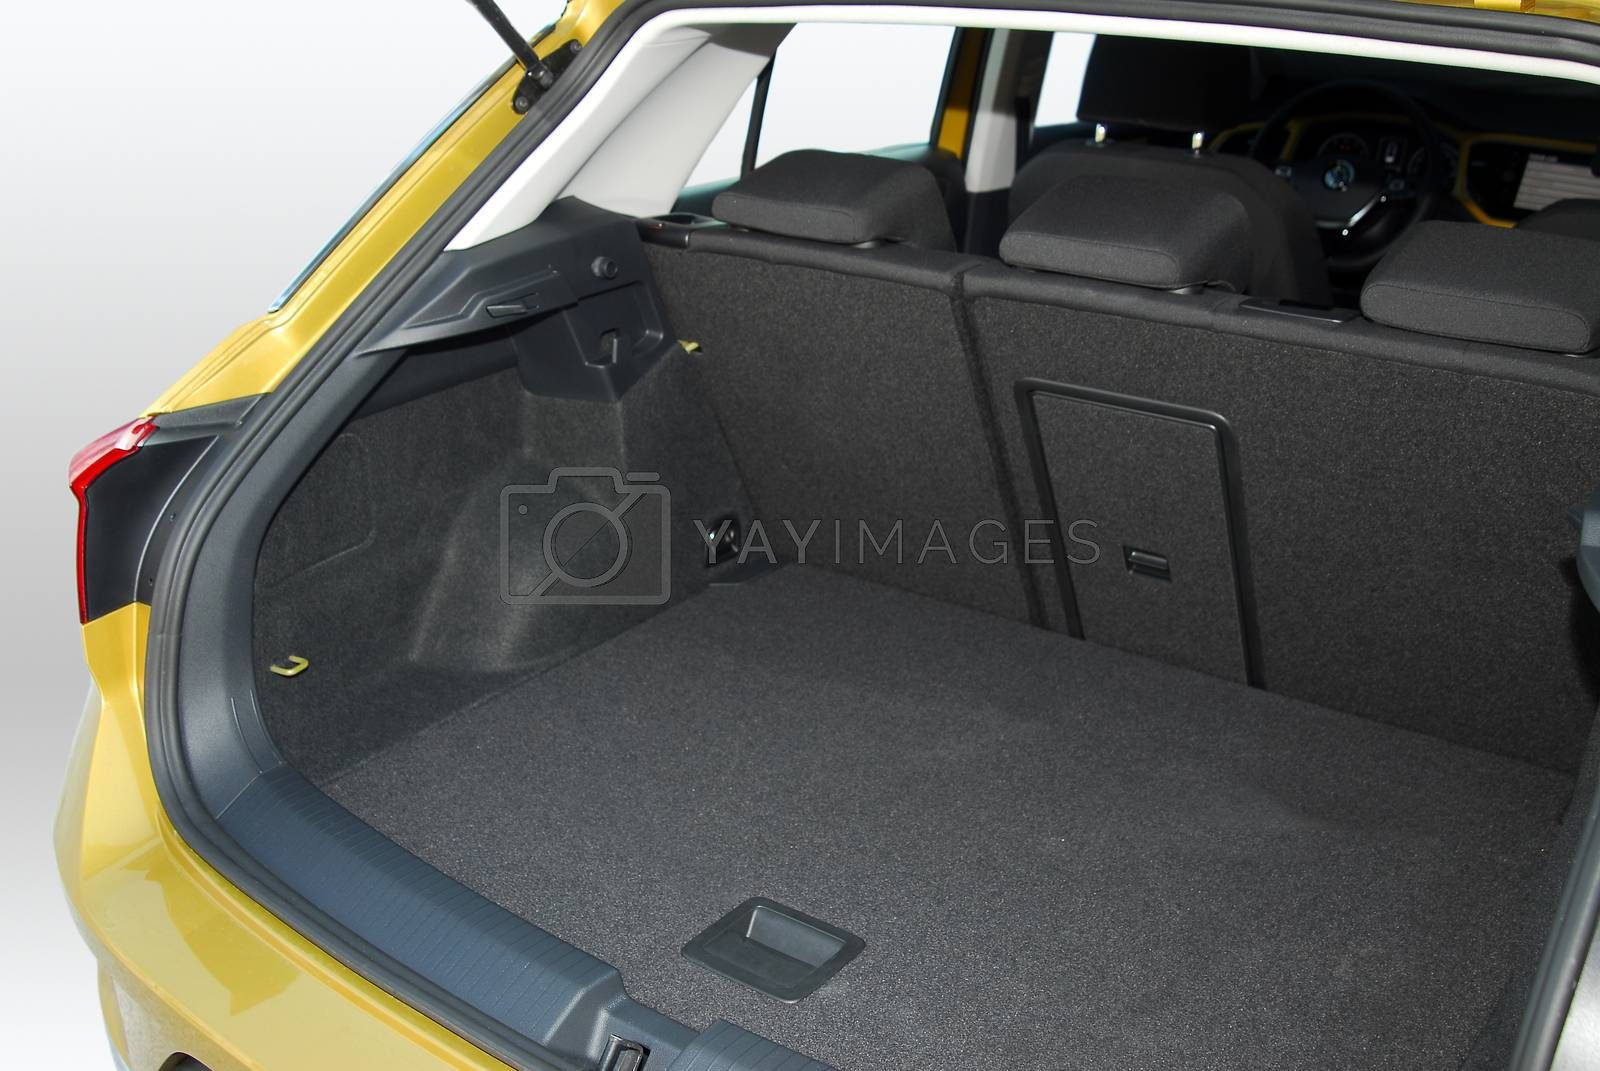 Royalty free image of Car trunk by aselsa